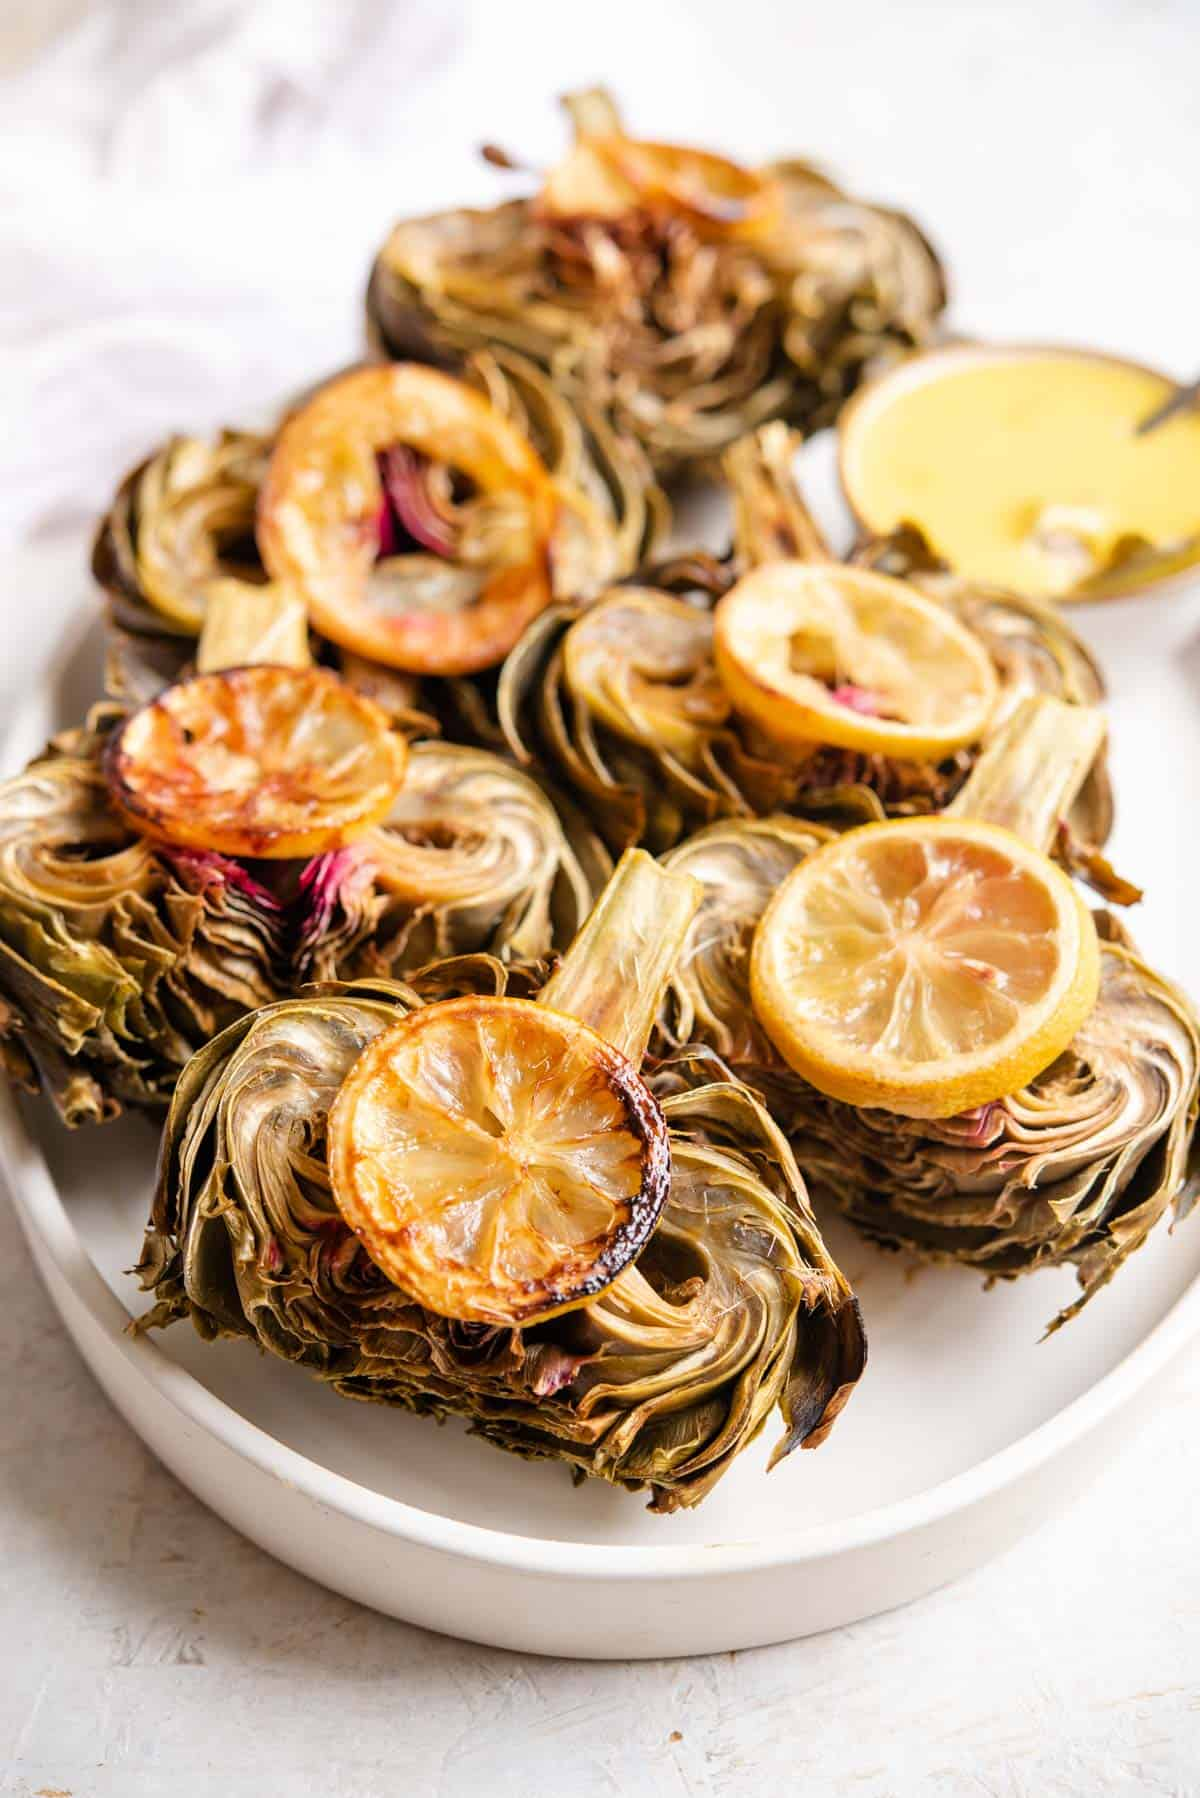 A side shot of roasted artichokes on a serving plate